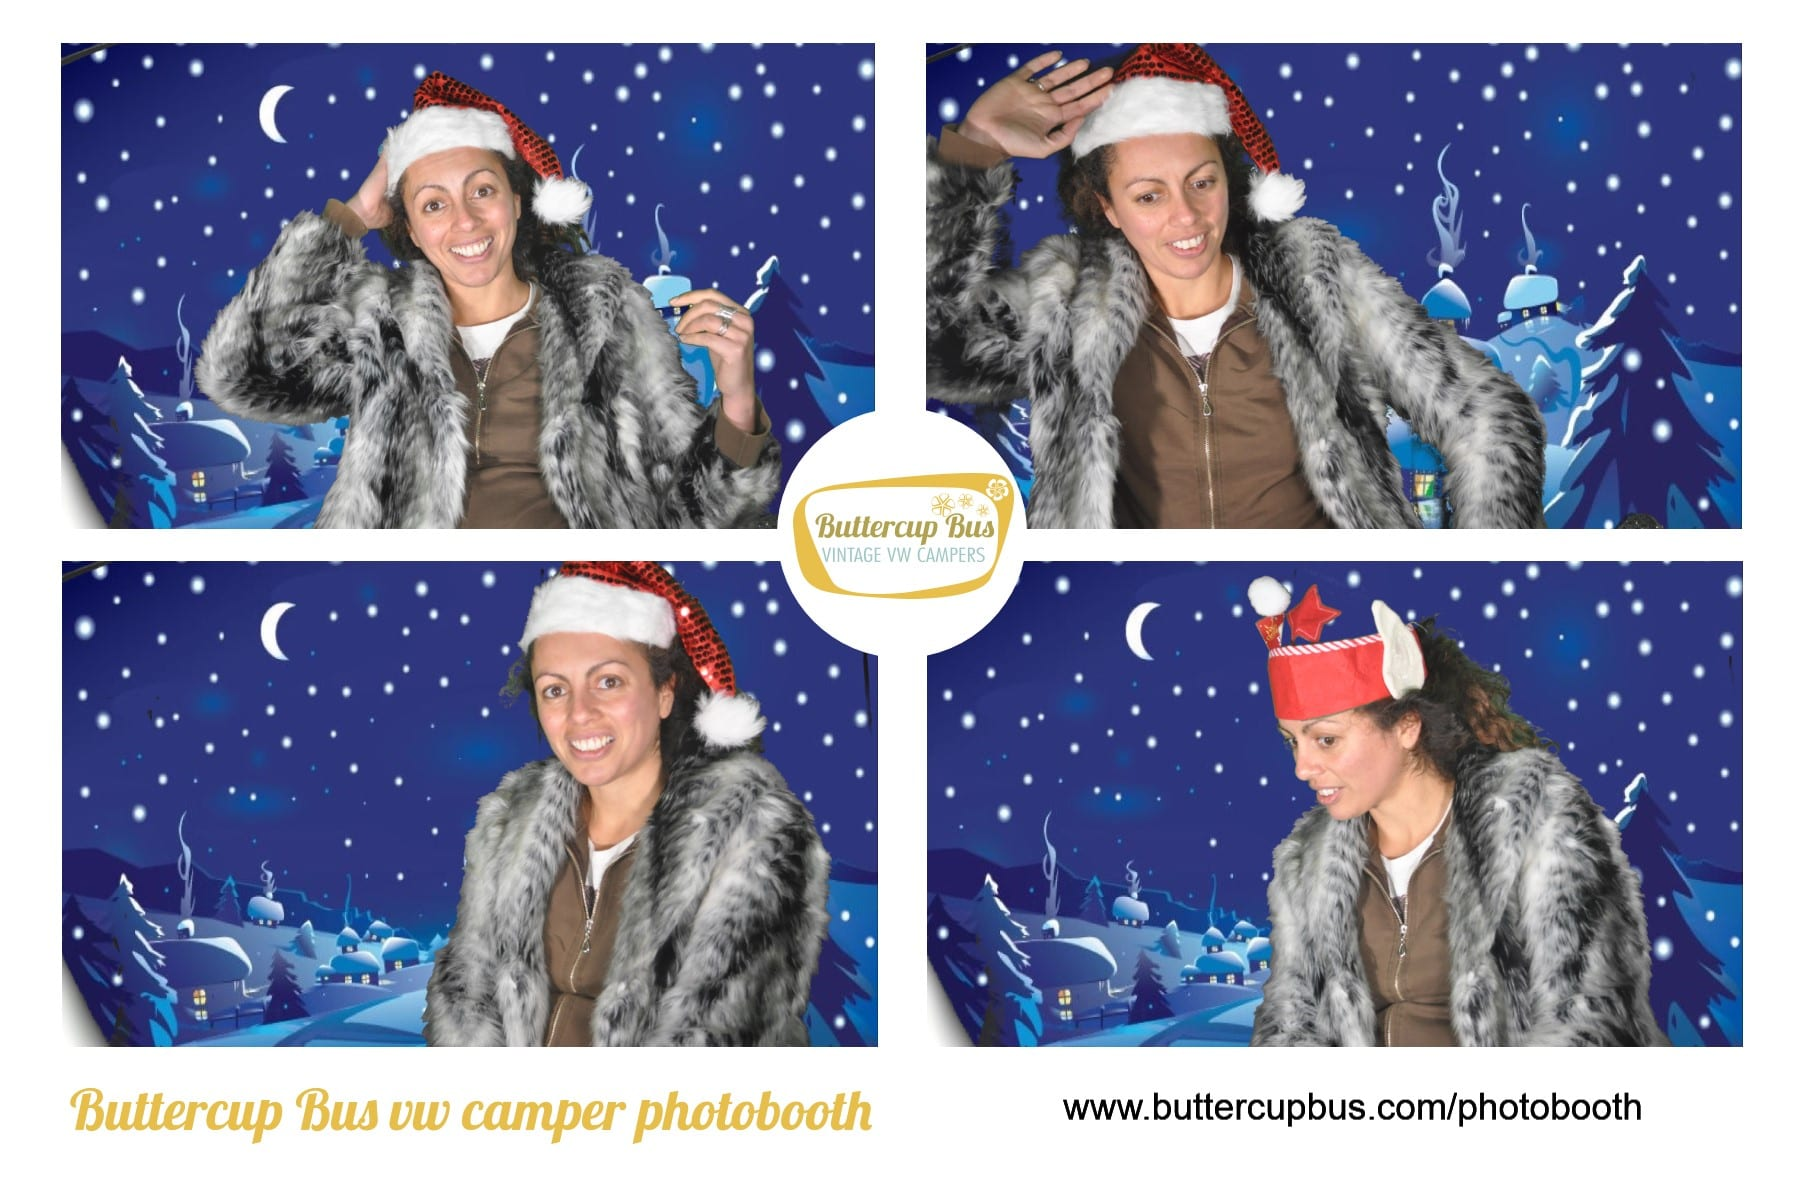 Christmas VW Camper photobooth in Surrey Greenscreen